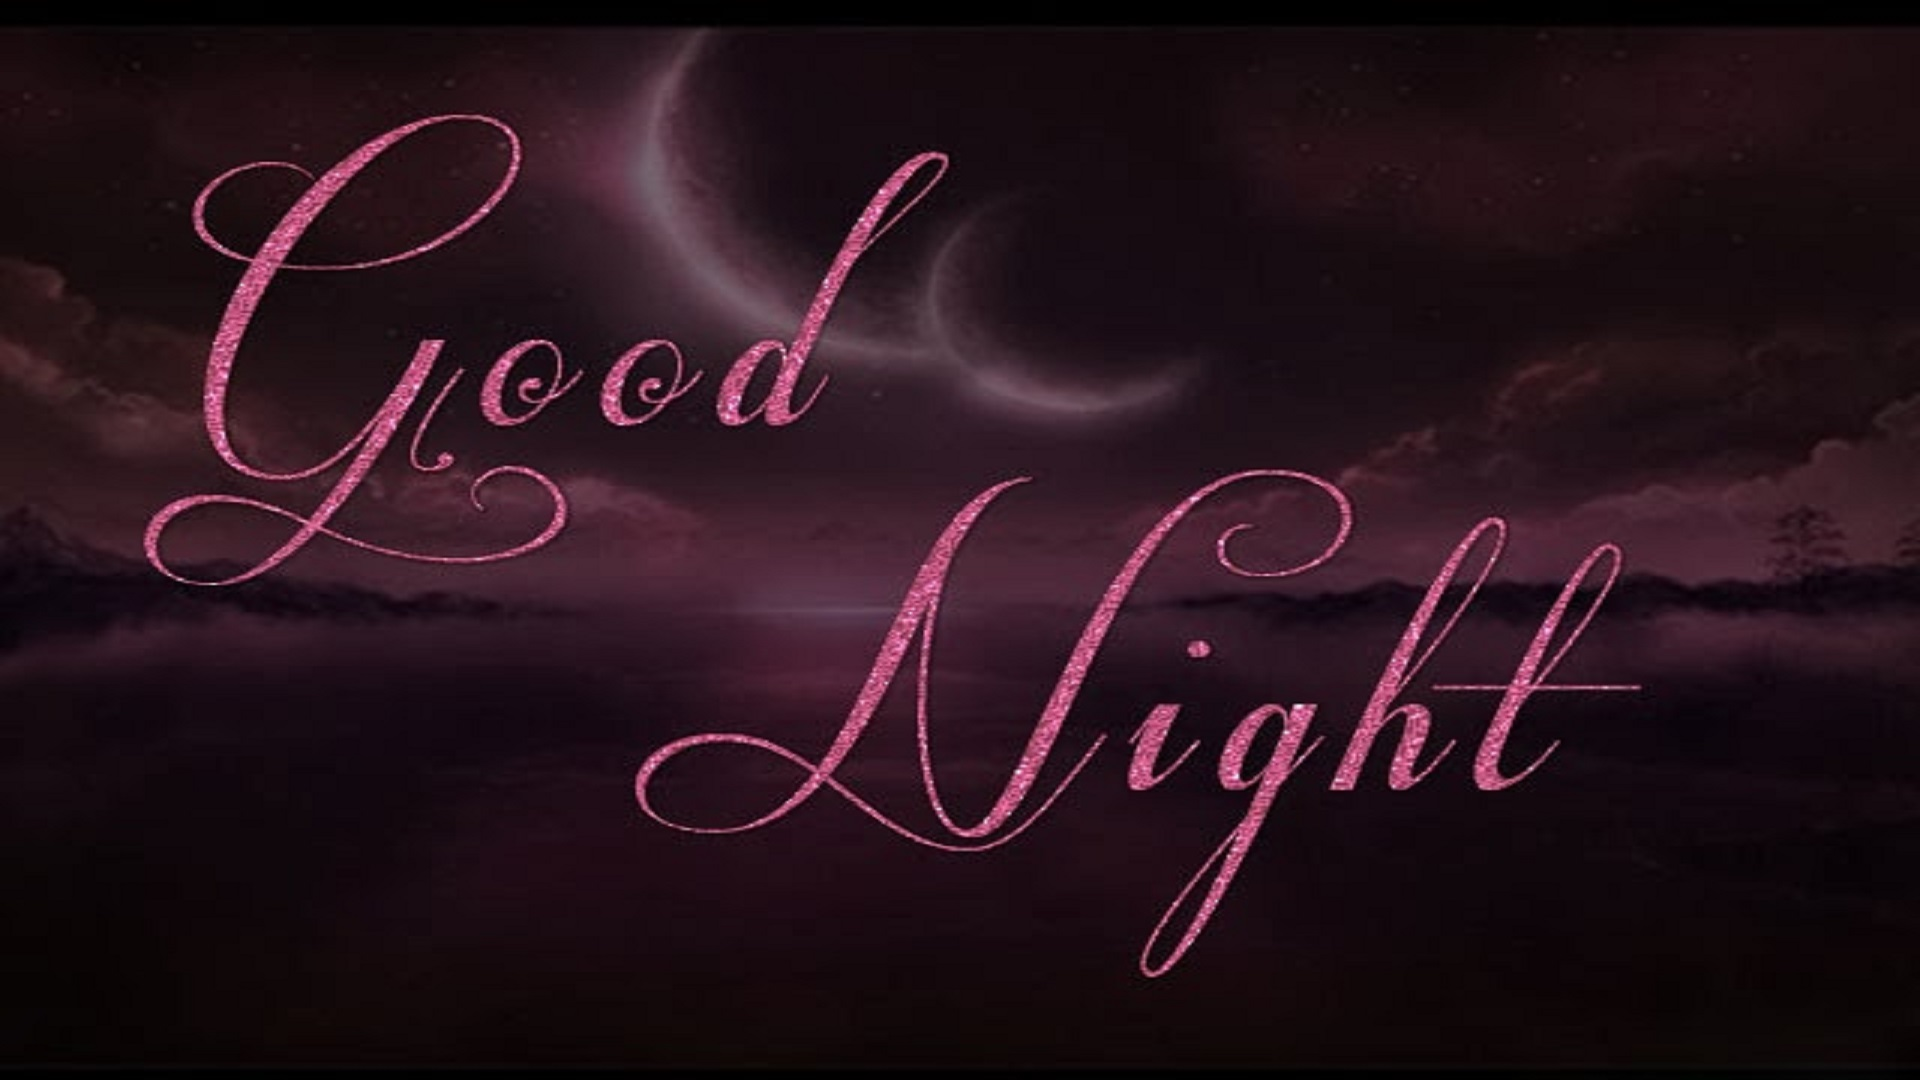 Good Night Wallpaper For Girl Boy Friends Free Hd Hd Wallpaper